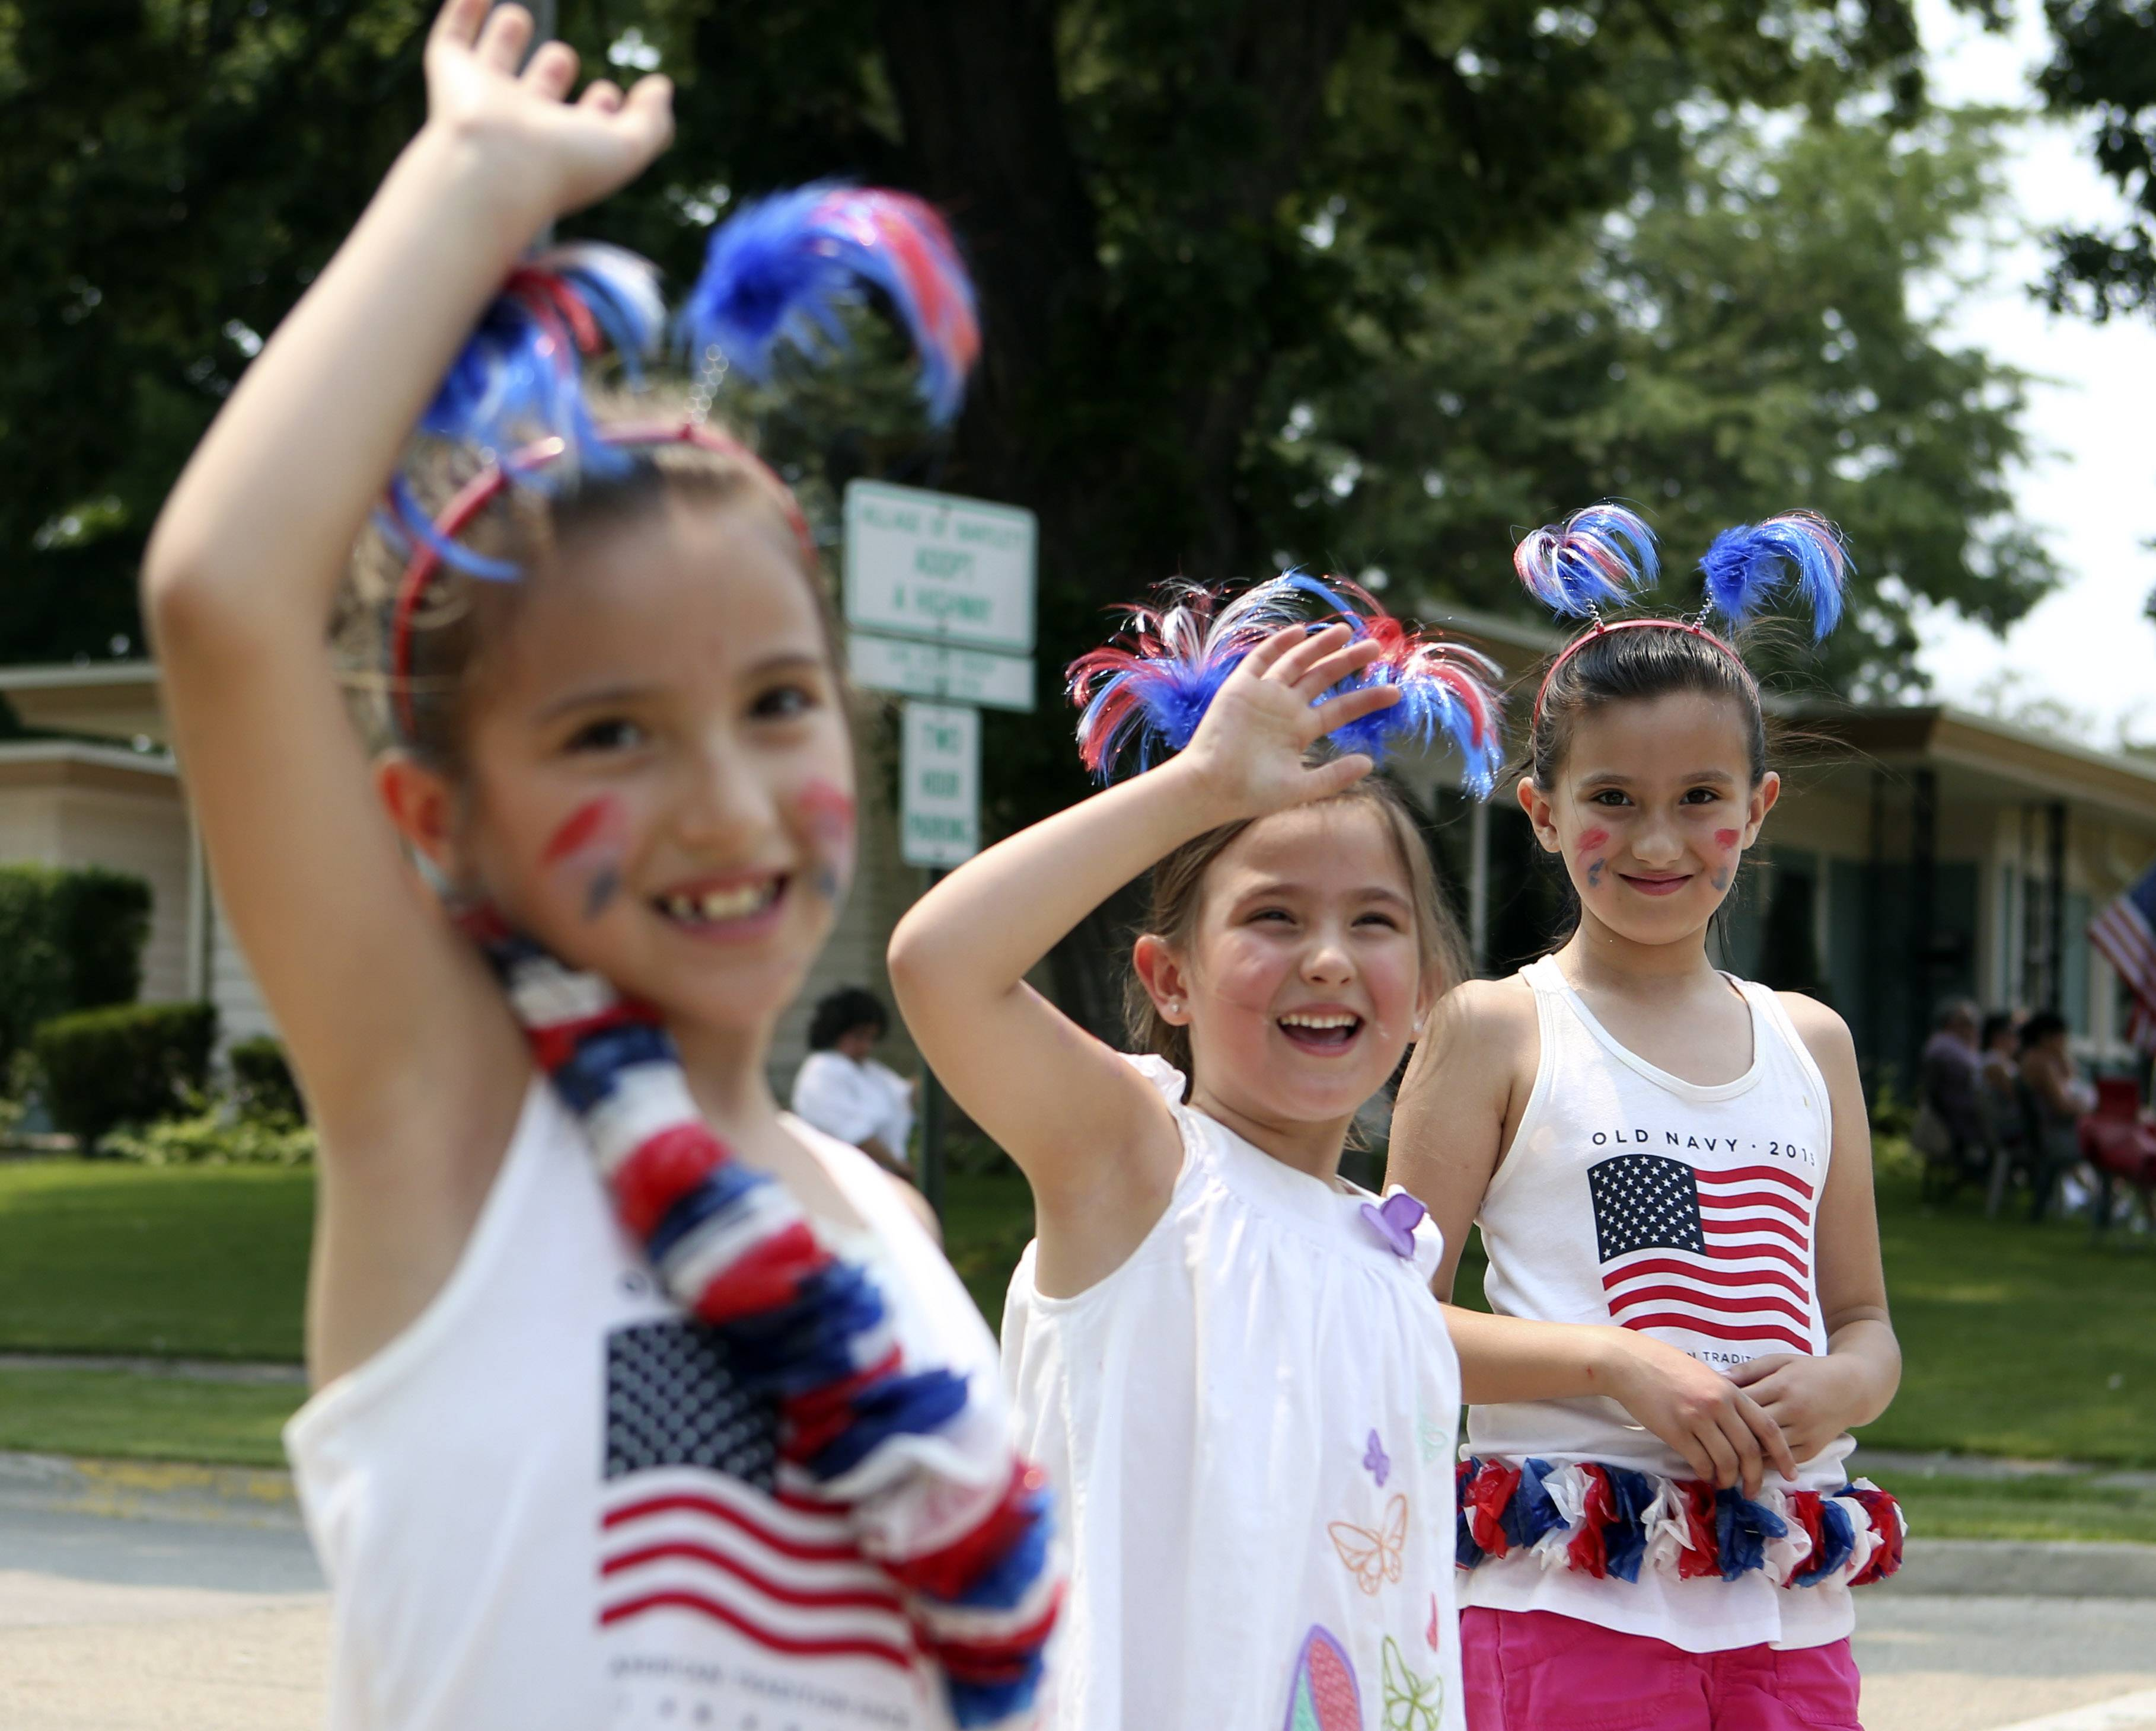 Isabella Garza, center, 5, of Schaumburg, greets parade participants with her sisters Elyssa, left, 7, and Madalyn, 9, during the Bartlett Lions Club Fourth of July Parade on Sunday.